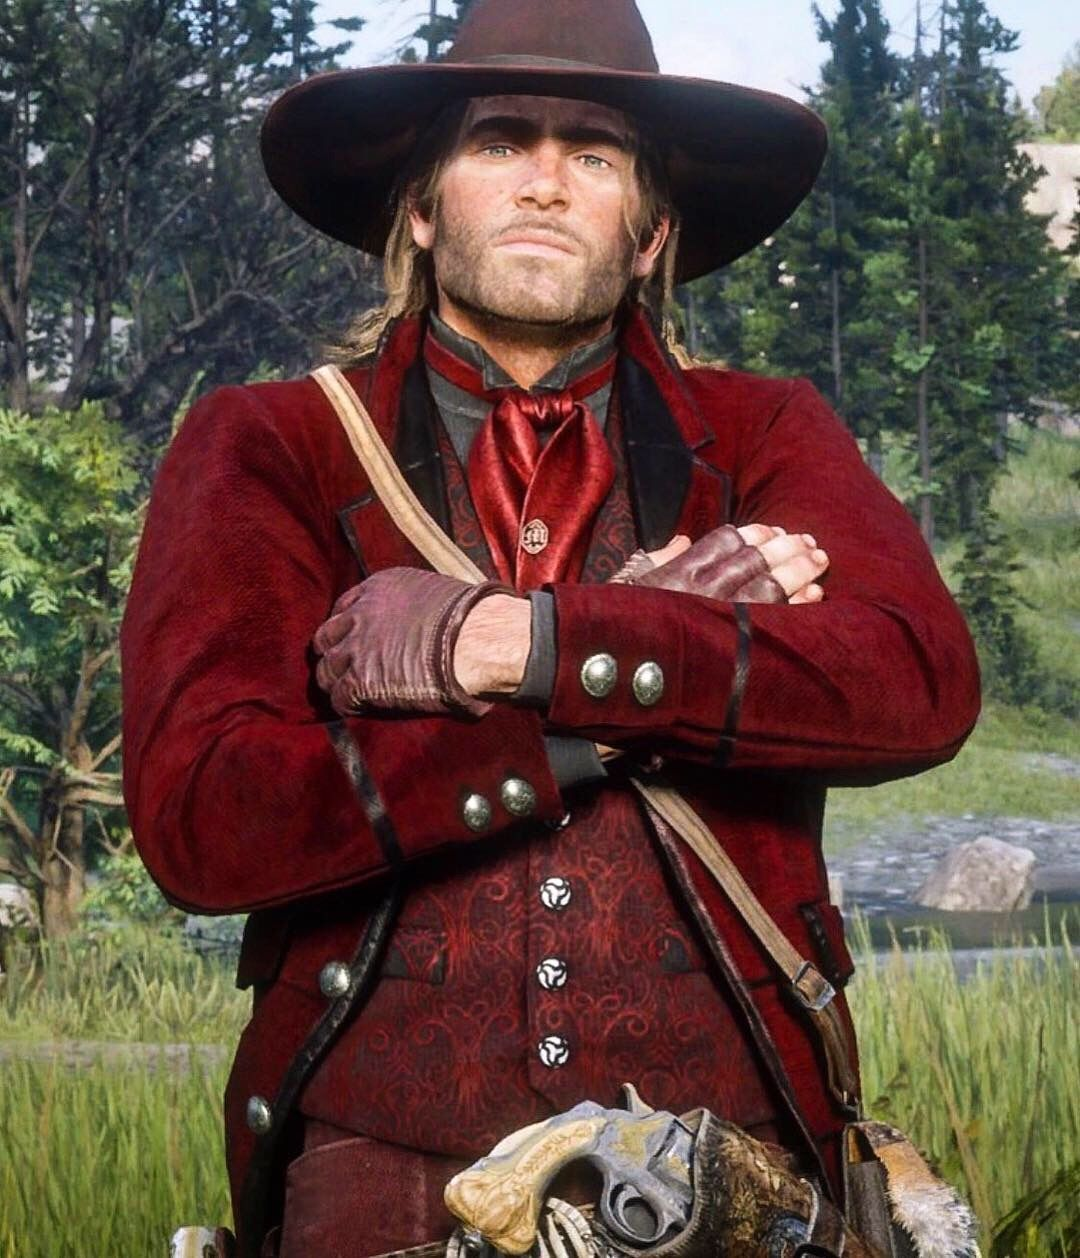 Rdr2222 Outfits Arthur + Rdr2222 Outfits in 2222022220  Red dead redemption